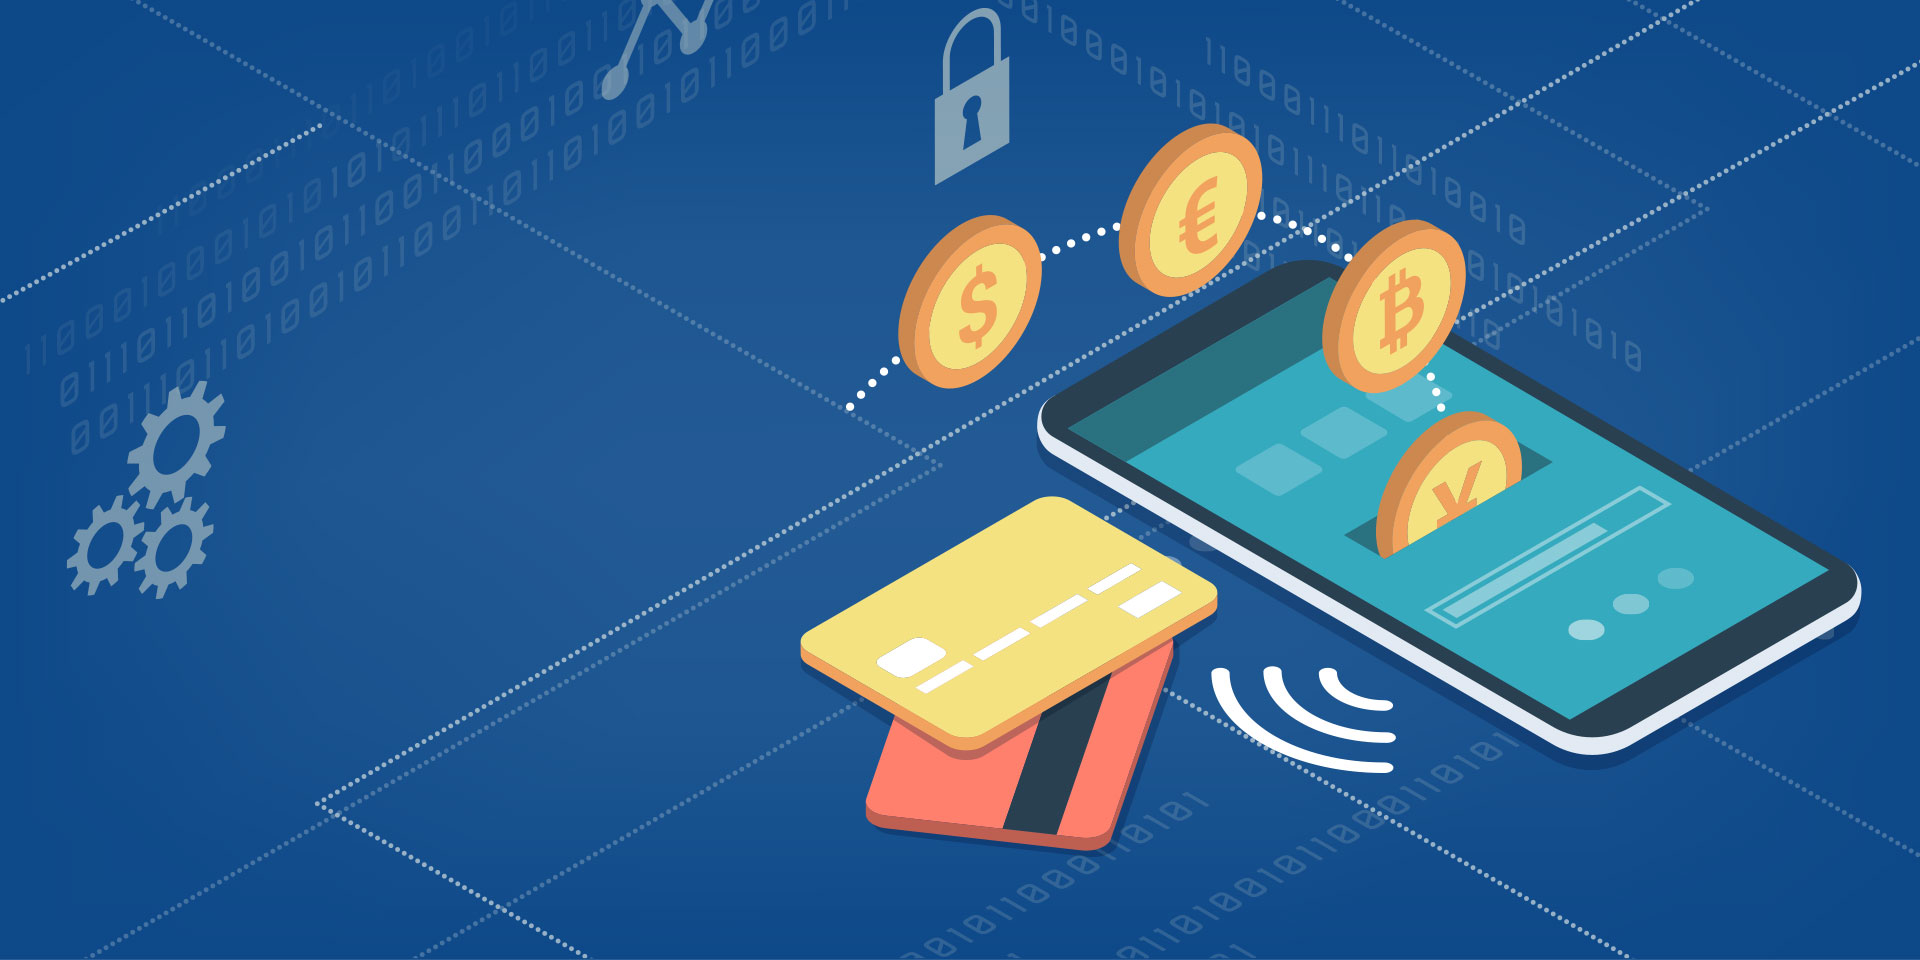 How to keep transactions secure with payment fraud on the rise